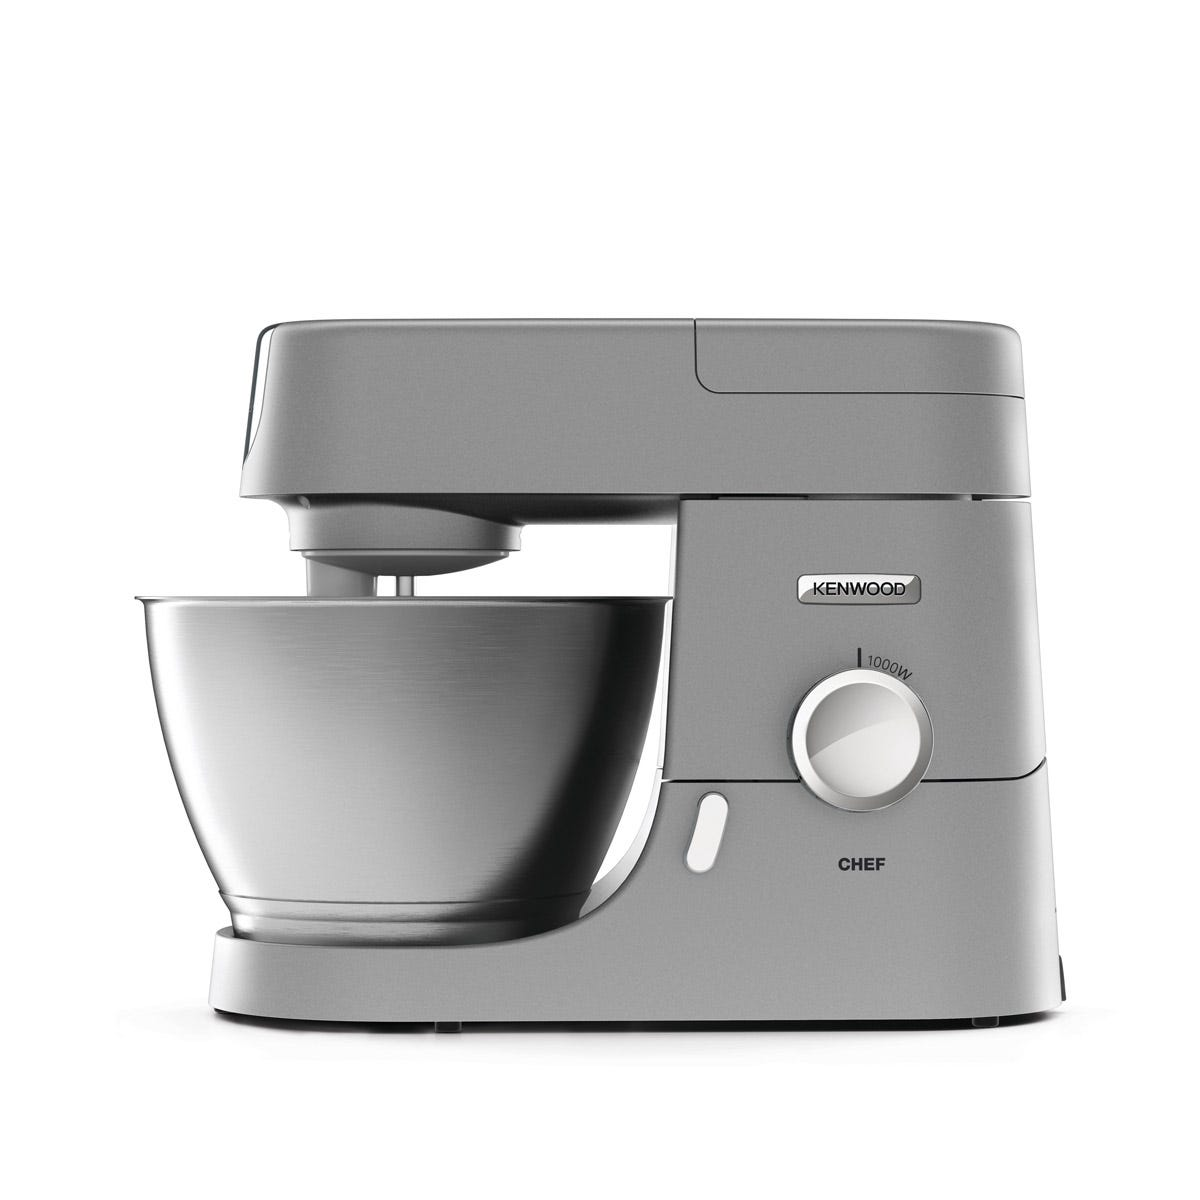 Kenwood KVC3100S 1000W 4.6L Chef Stand Mixer - Silver